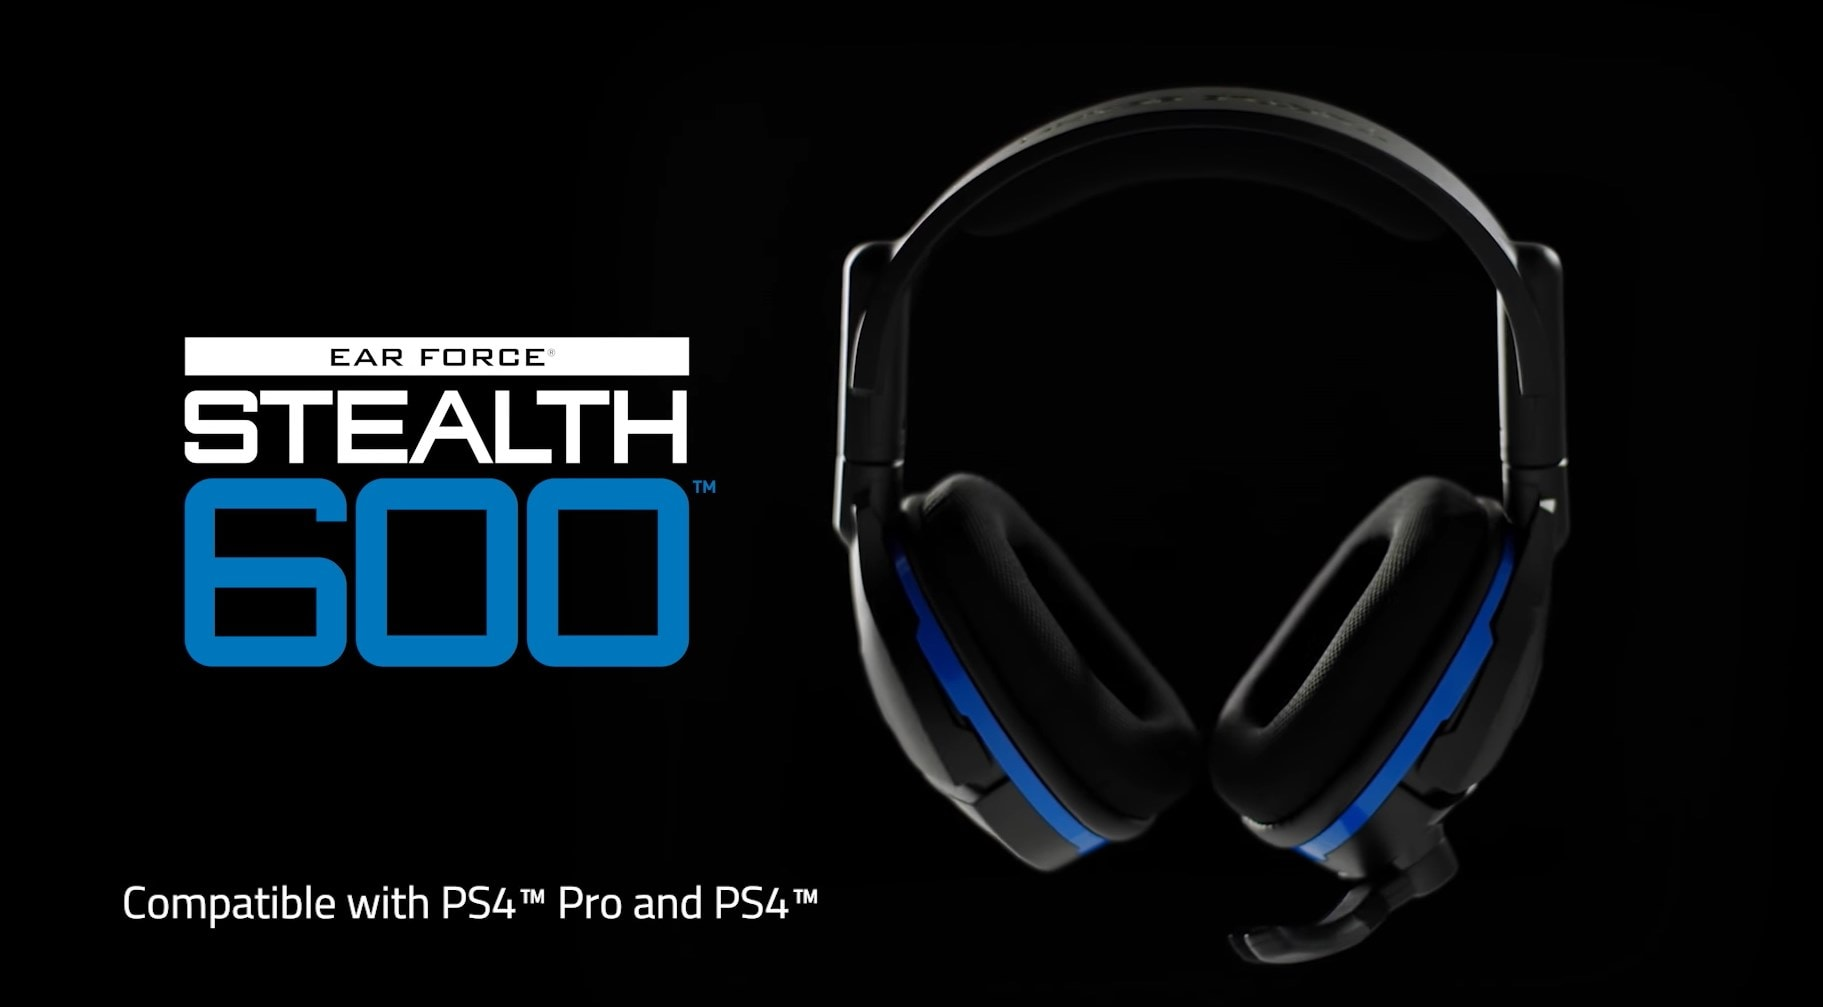 A wireless gaming headset for Glasses Wearers Gamers